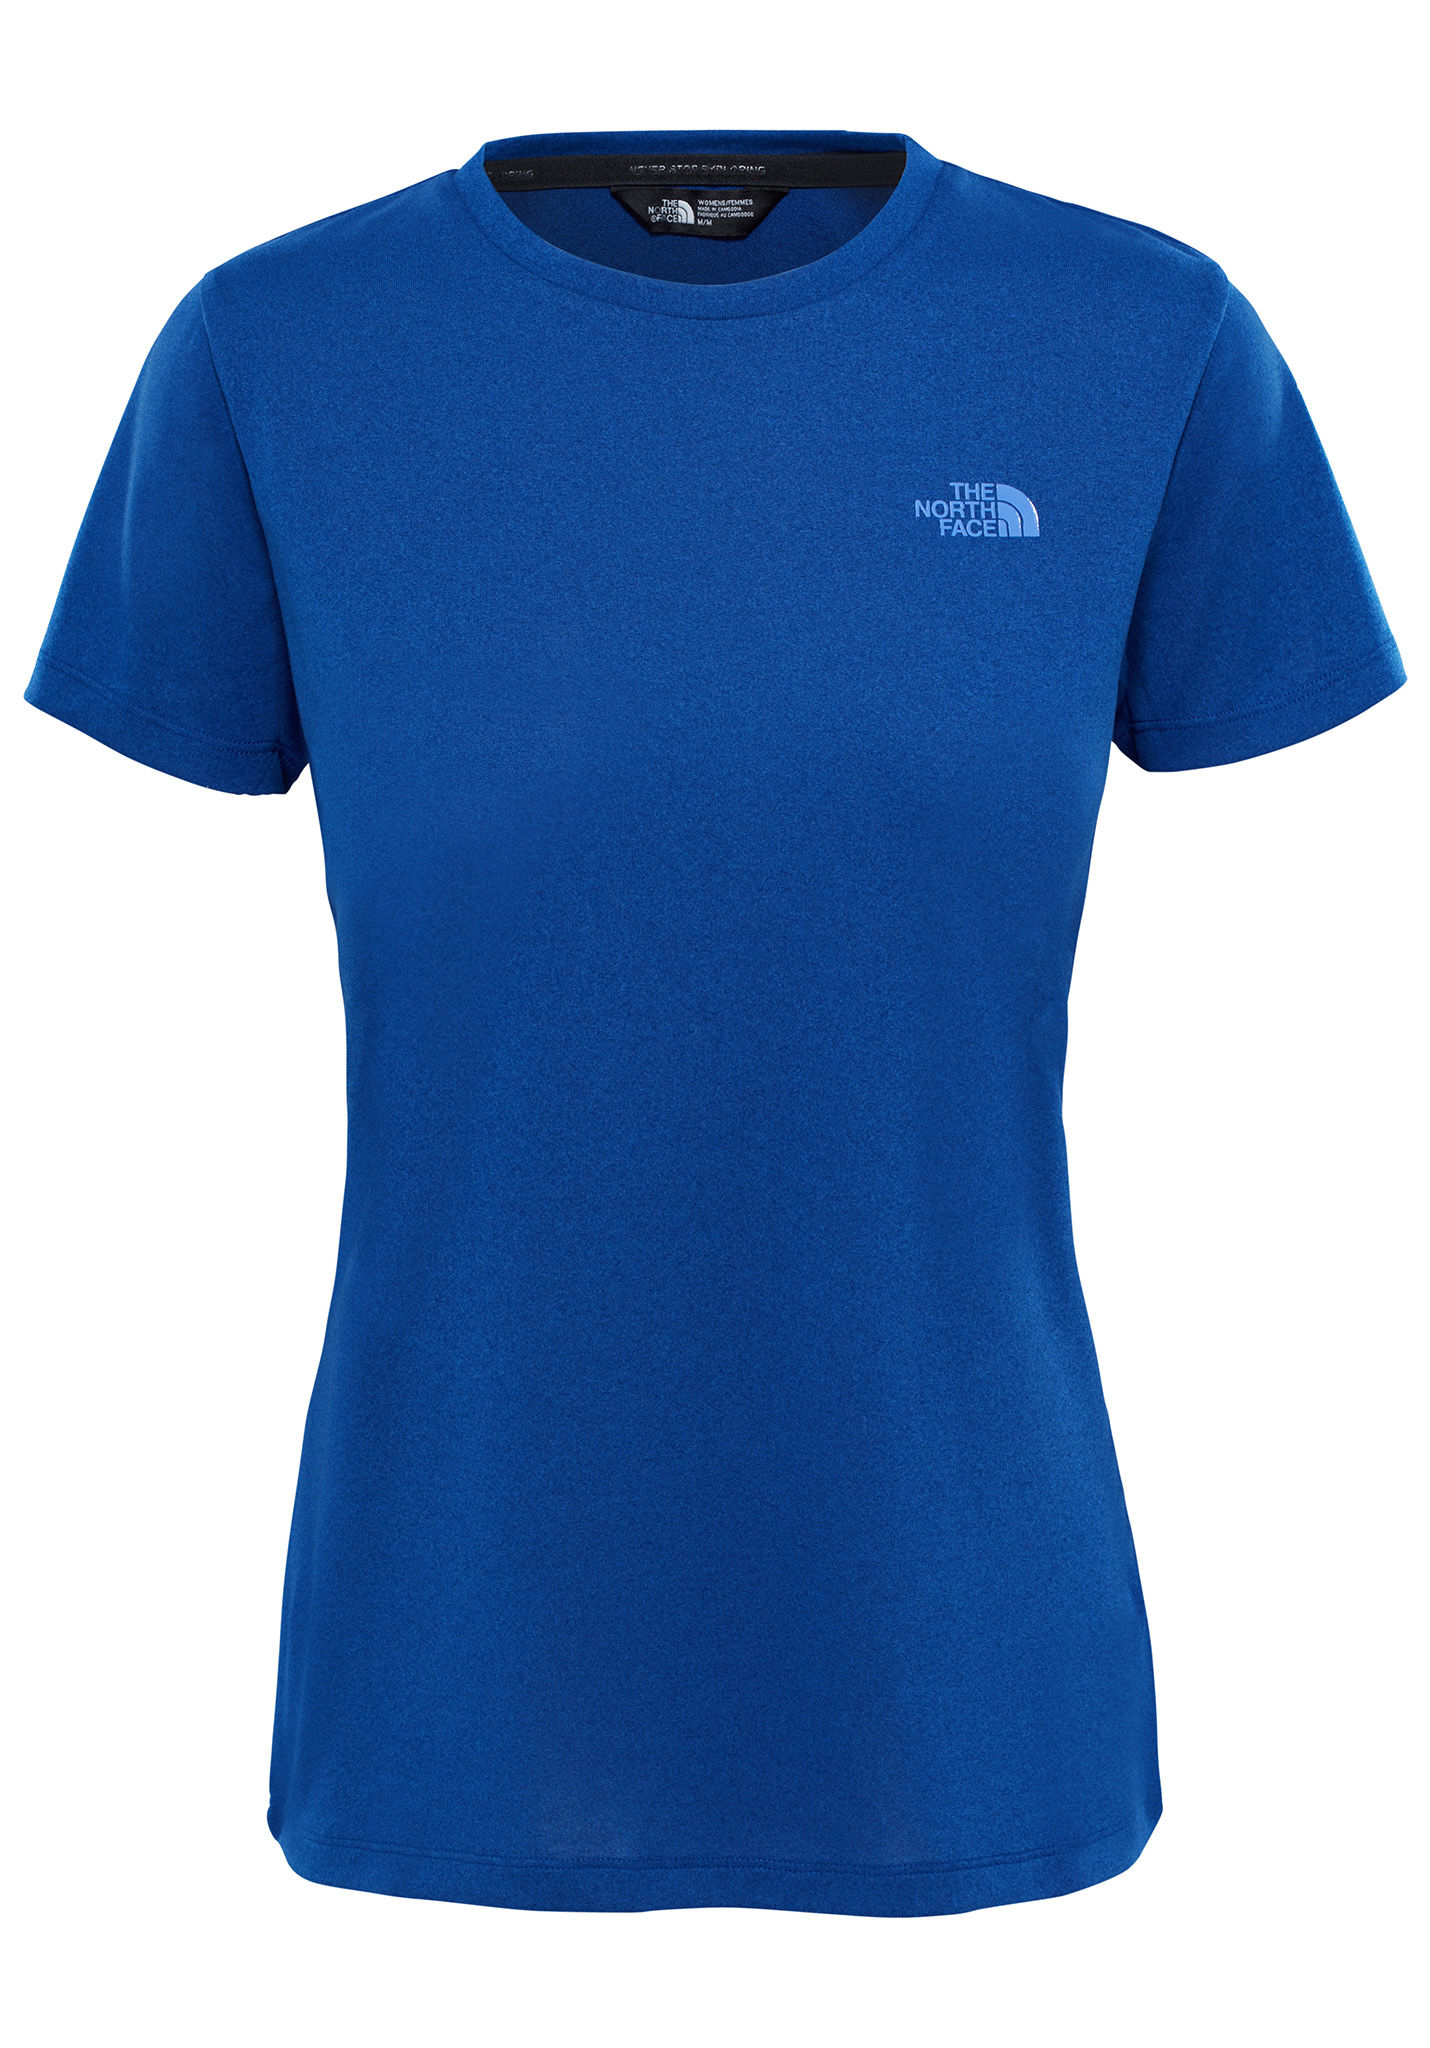 821c68be0f686f THE NORTH FACE Tanken - T-Shirt für Damen - Blau - Planet Sports